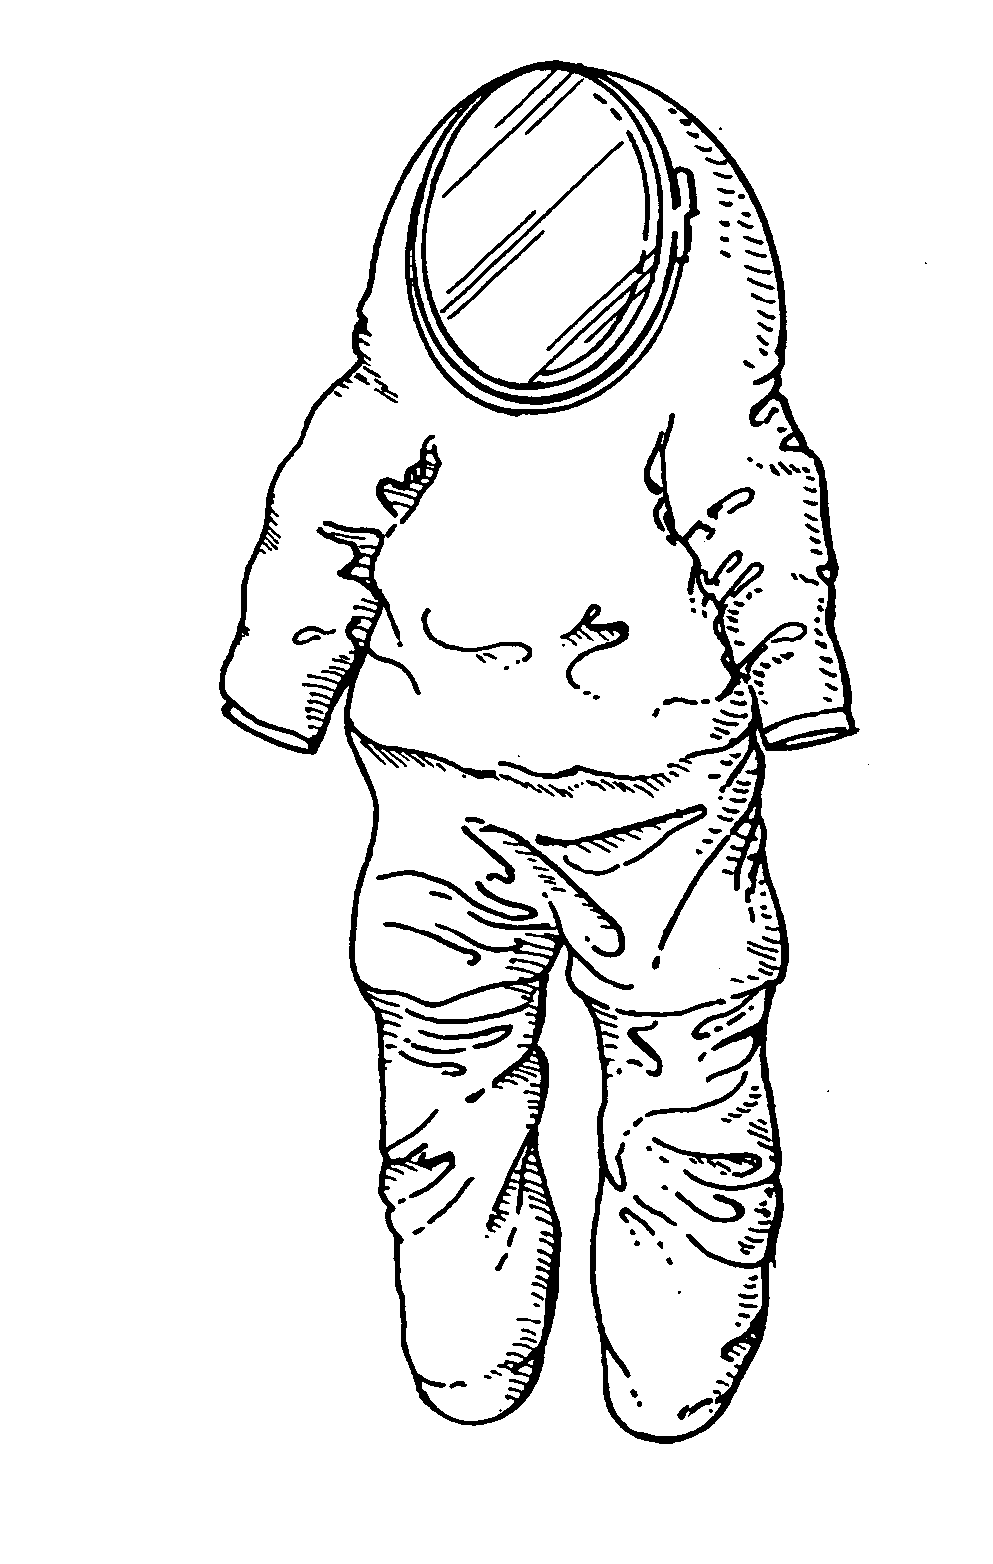 space suit drawing - photo #3